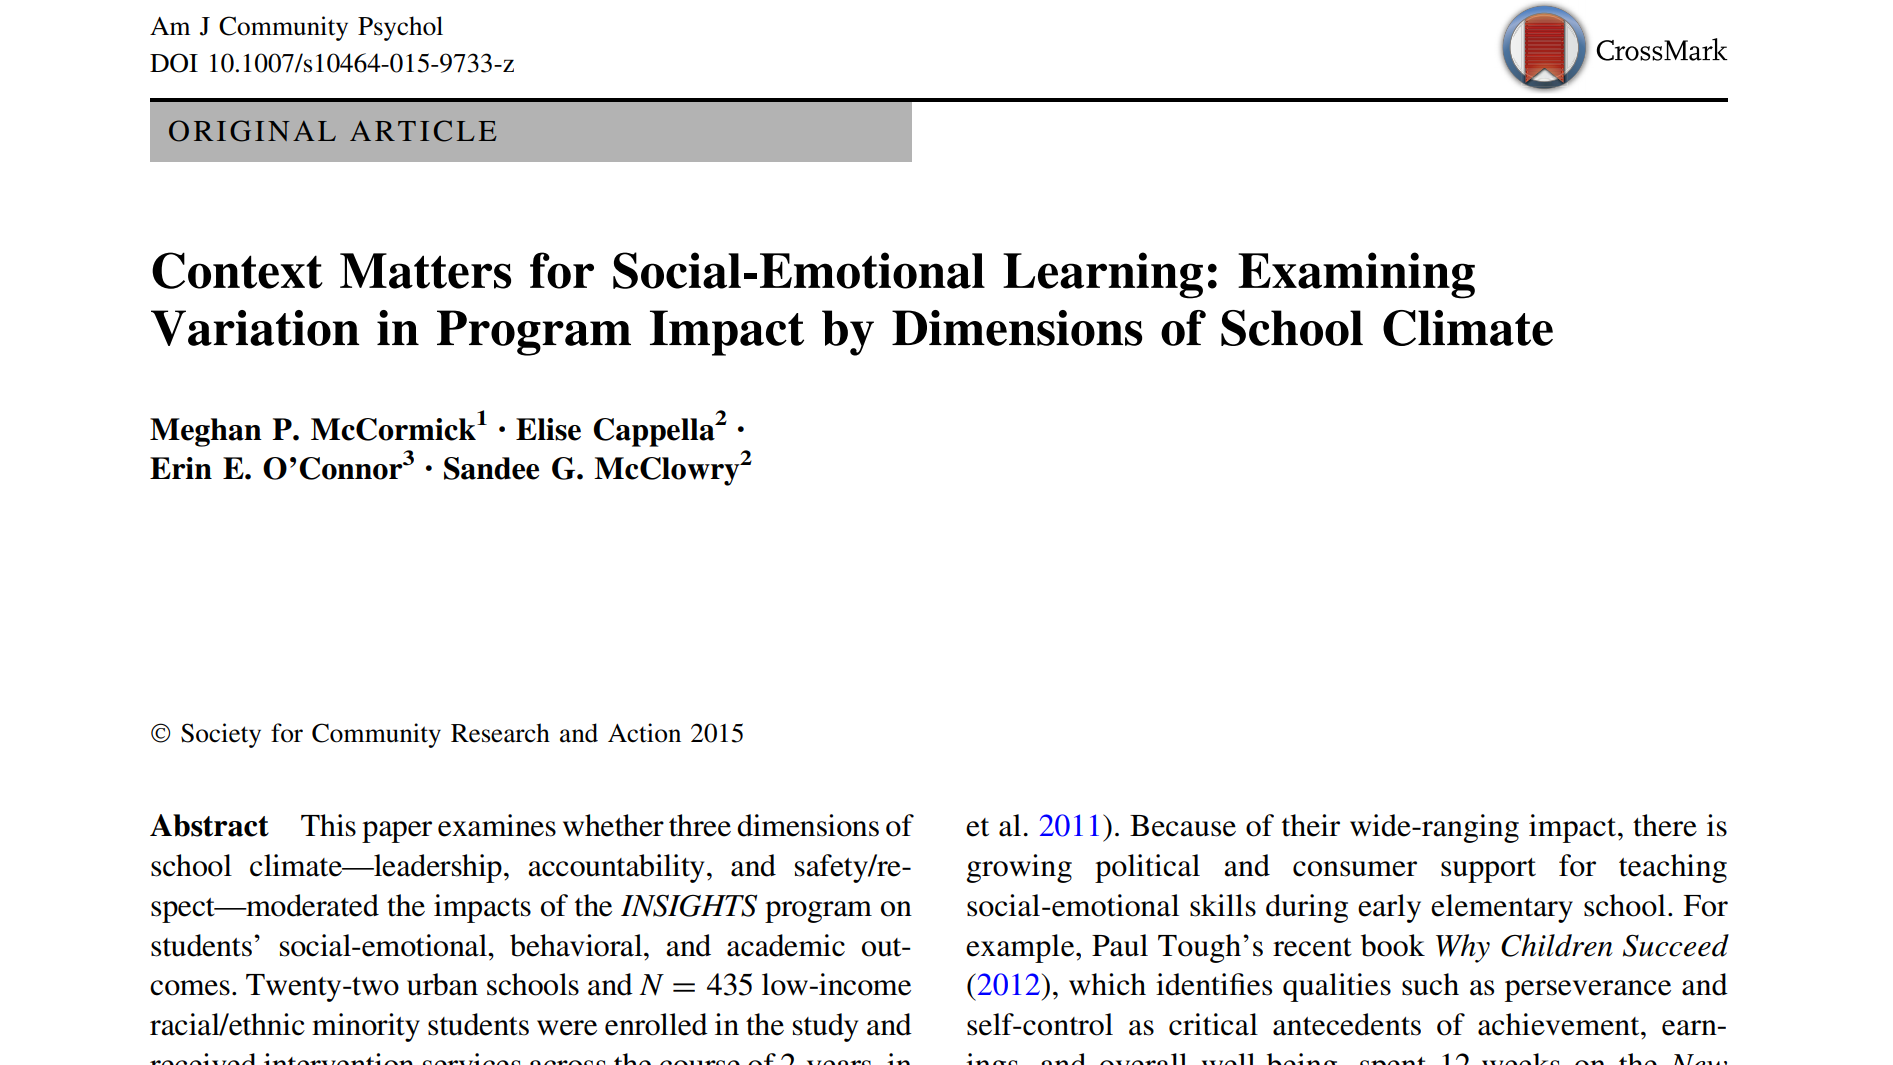 (PDF) Context Matters for Social-Emotional Learning: Examining ...